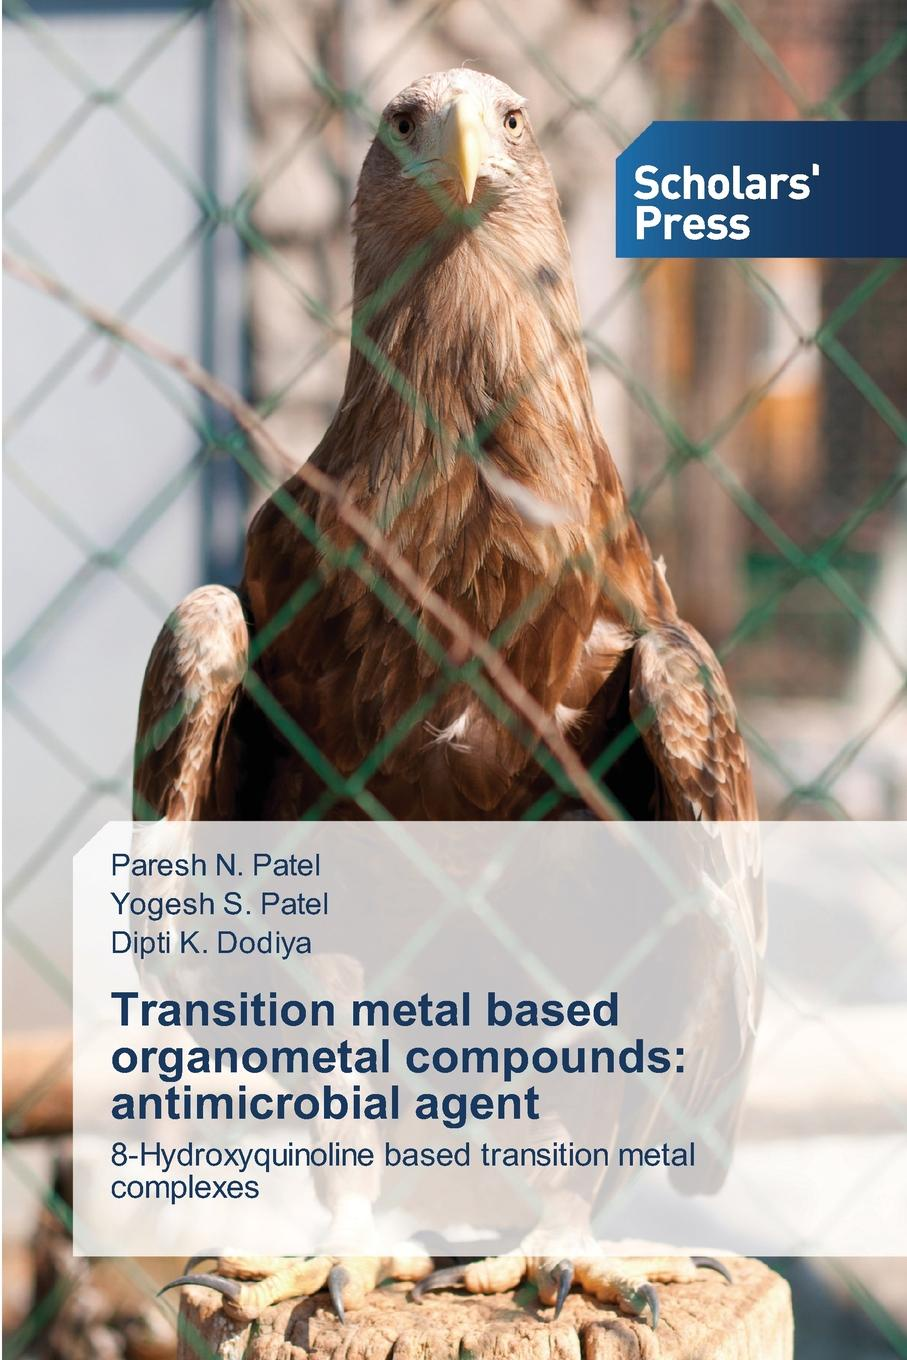 Patel Paresh N., Patel Yogesh S., Dodiya Dipti K. Transition metal based organometal compounds. antimicrobial agent clemens lamberth bioactive carboxylic compound classes pharmaceuticals and agrochemicals